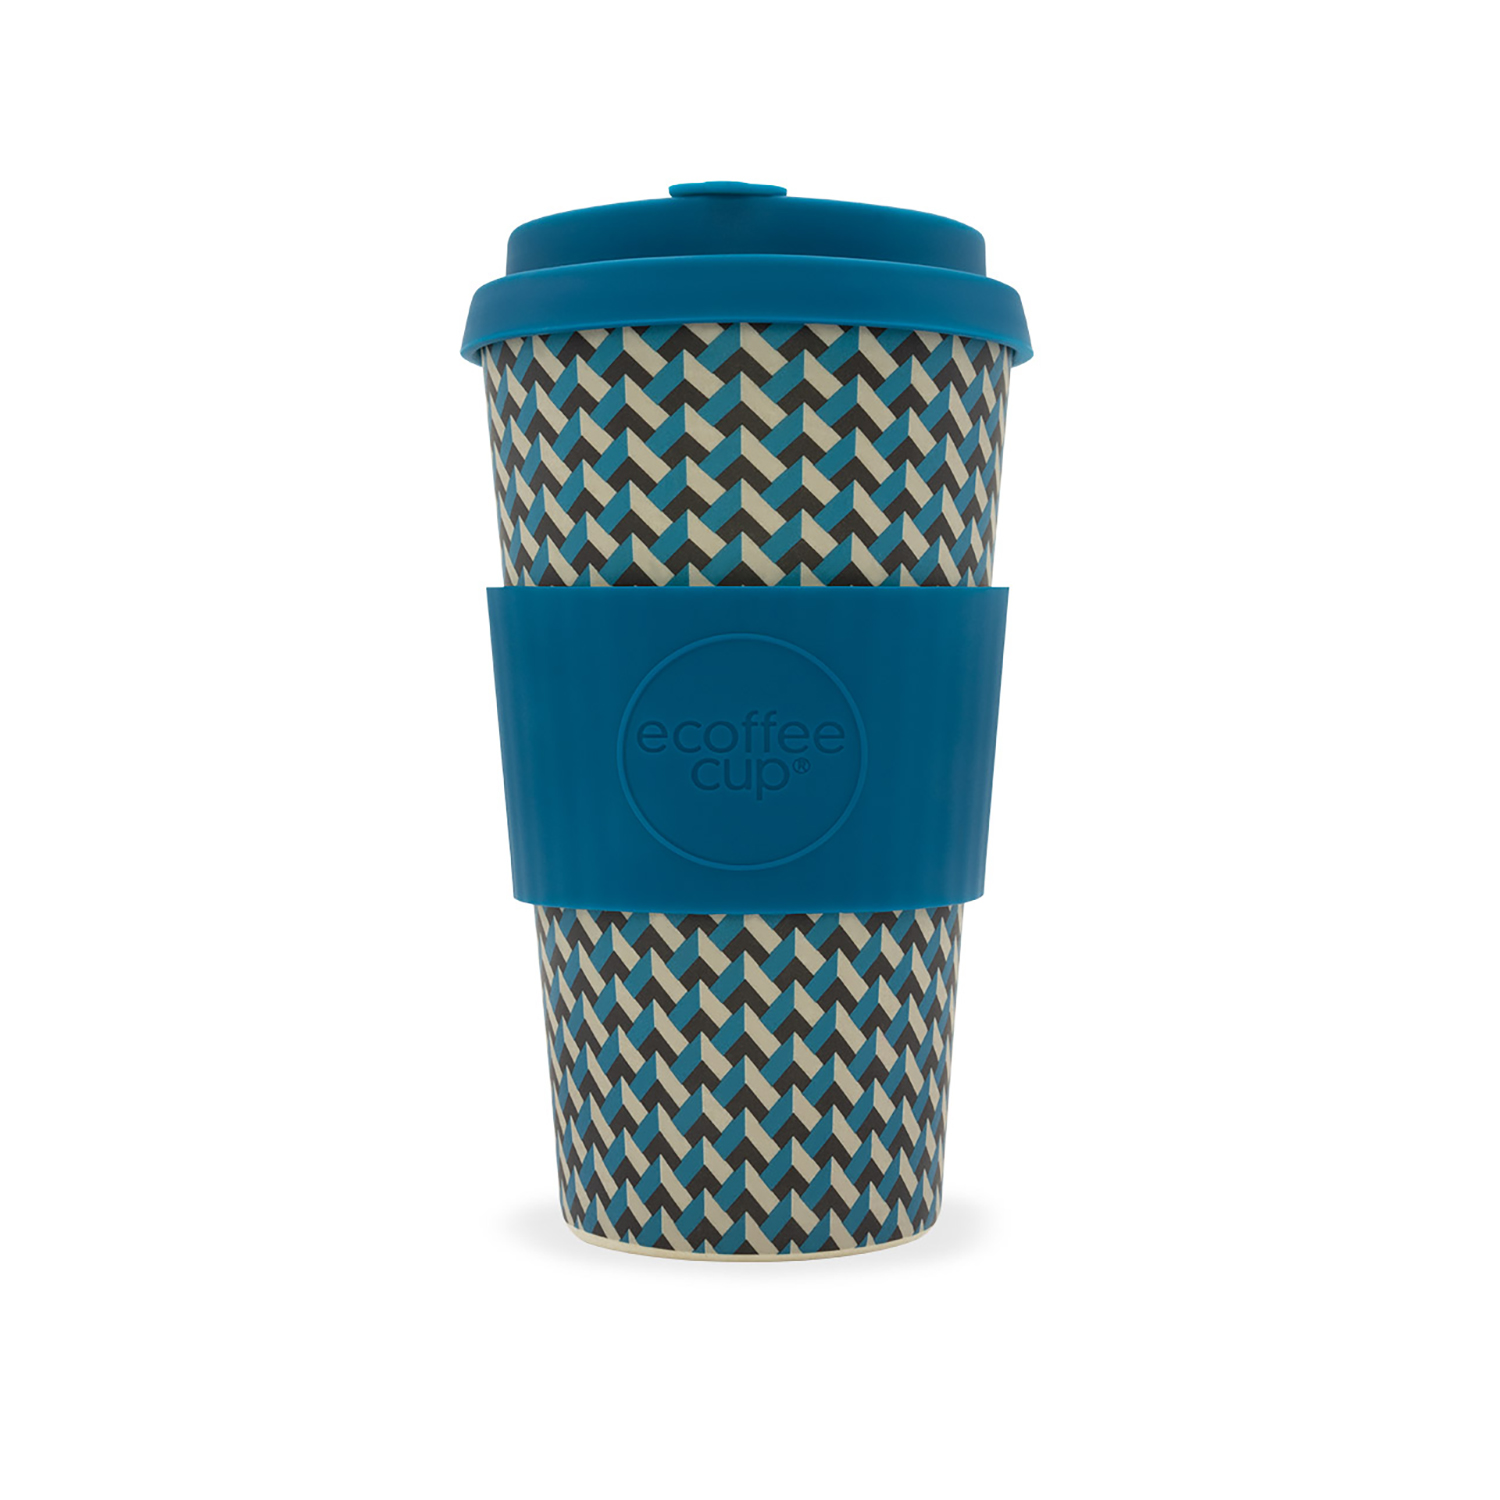 Domestic disposable cups or glasses or lids Ecoffee Eco 16oz Nathan Road Cup Ref 0303027